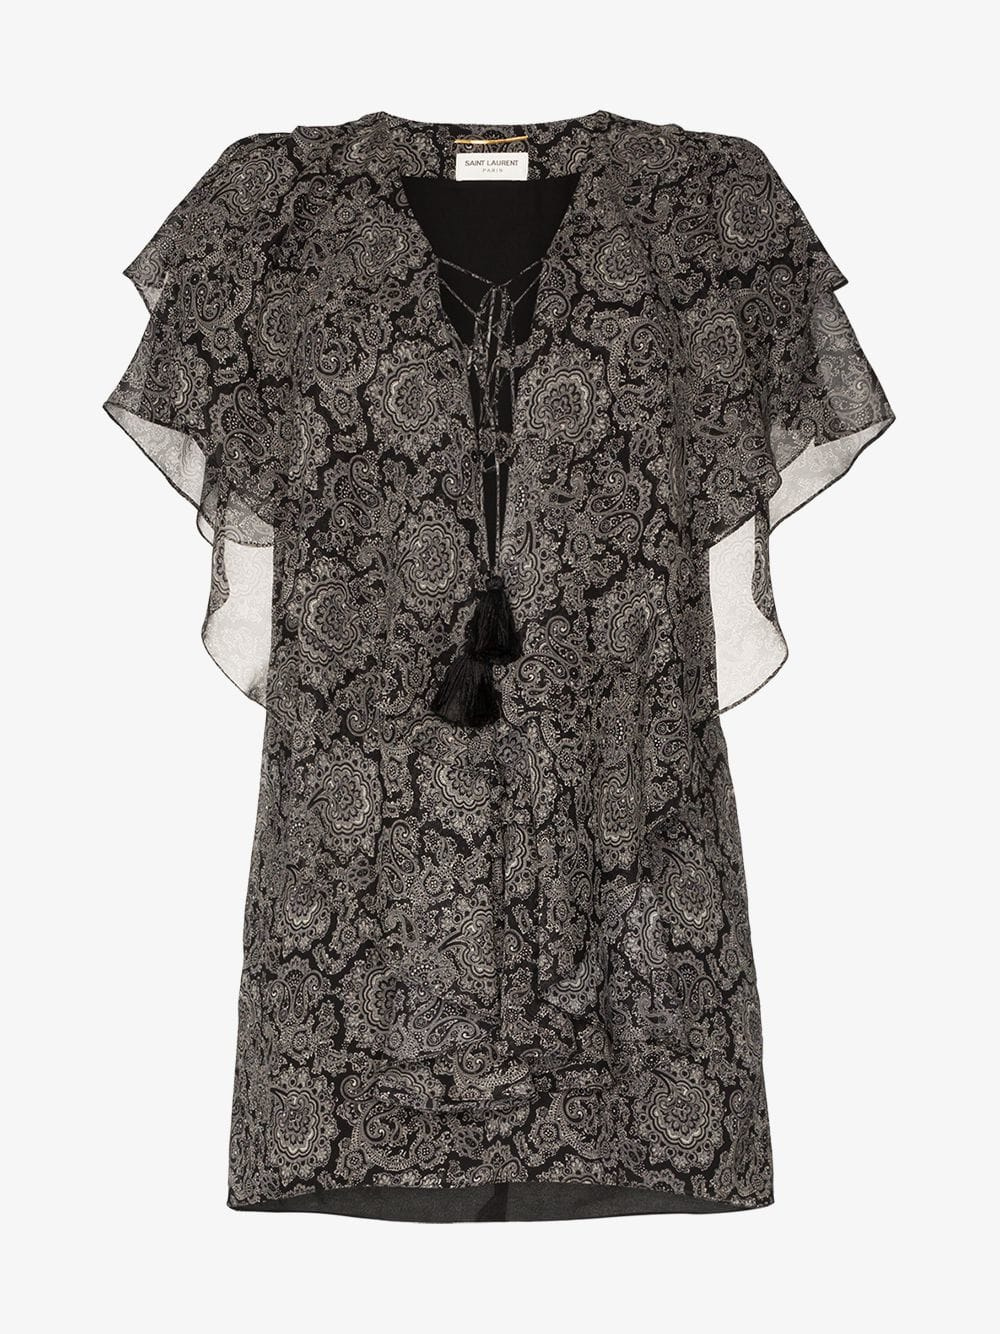 SAINT LAURENT Paisley Print Ruffle Silk Mini Black Dress